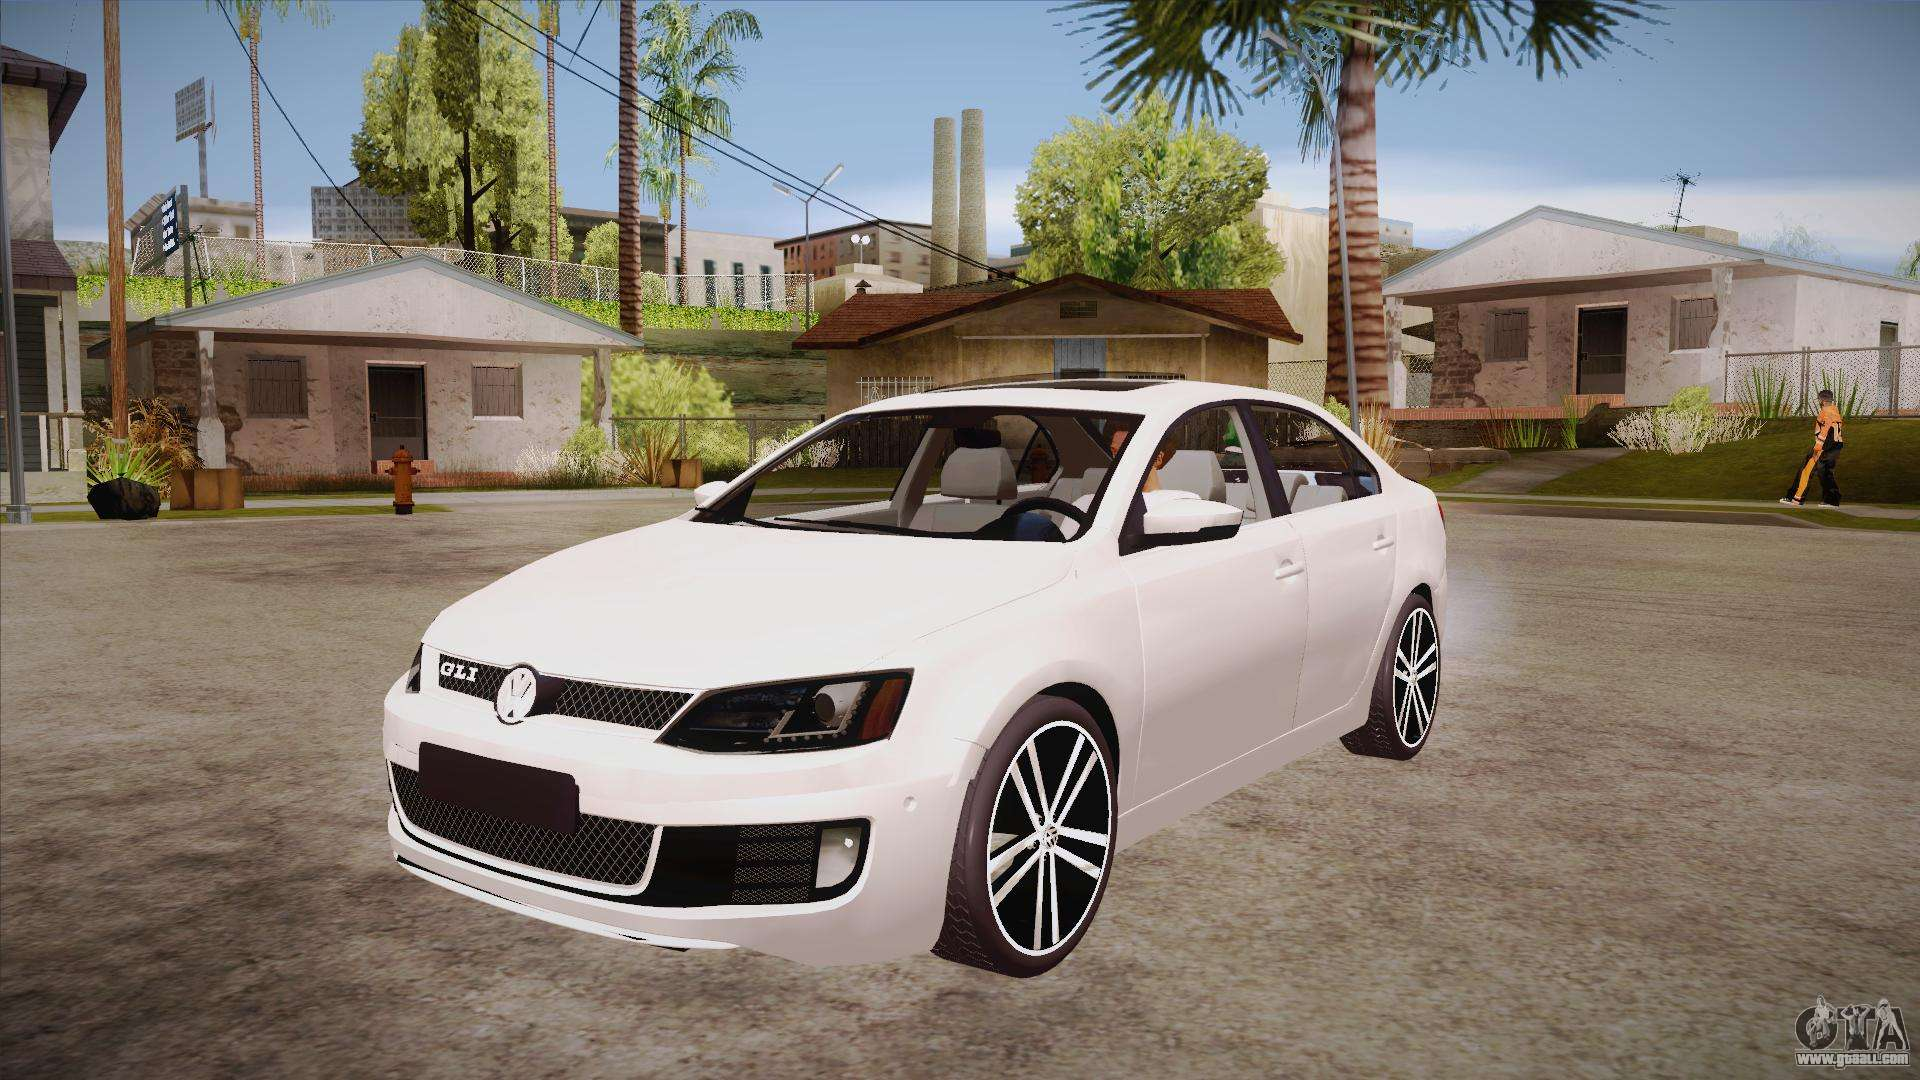 vw jetta gli 2013 for gta san andreas. Black Bedroom Furniture Sets. Home Design Ideas